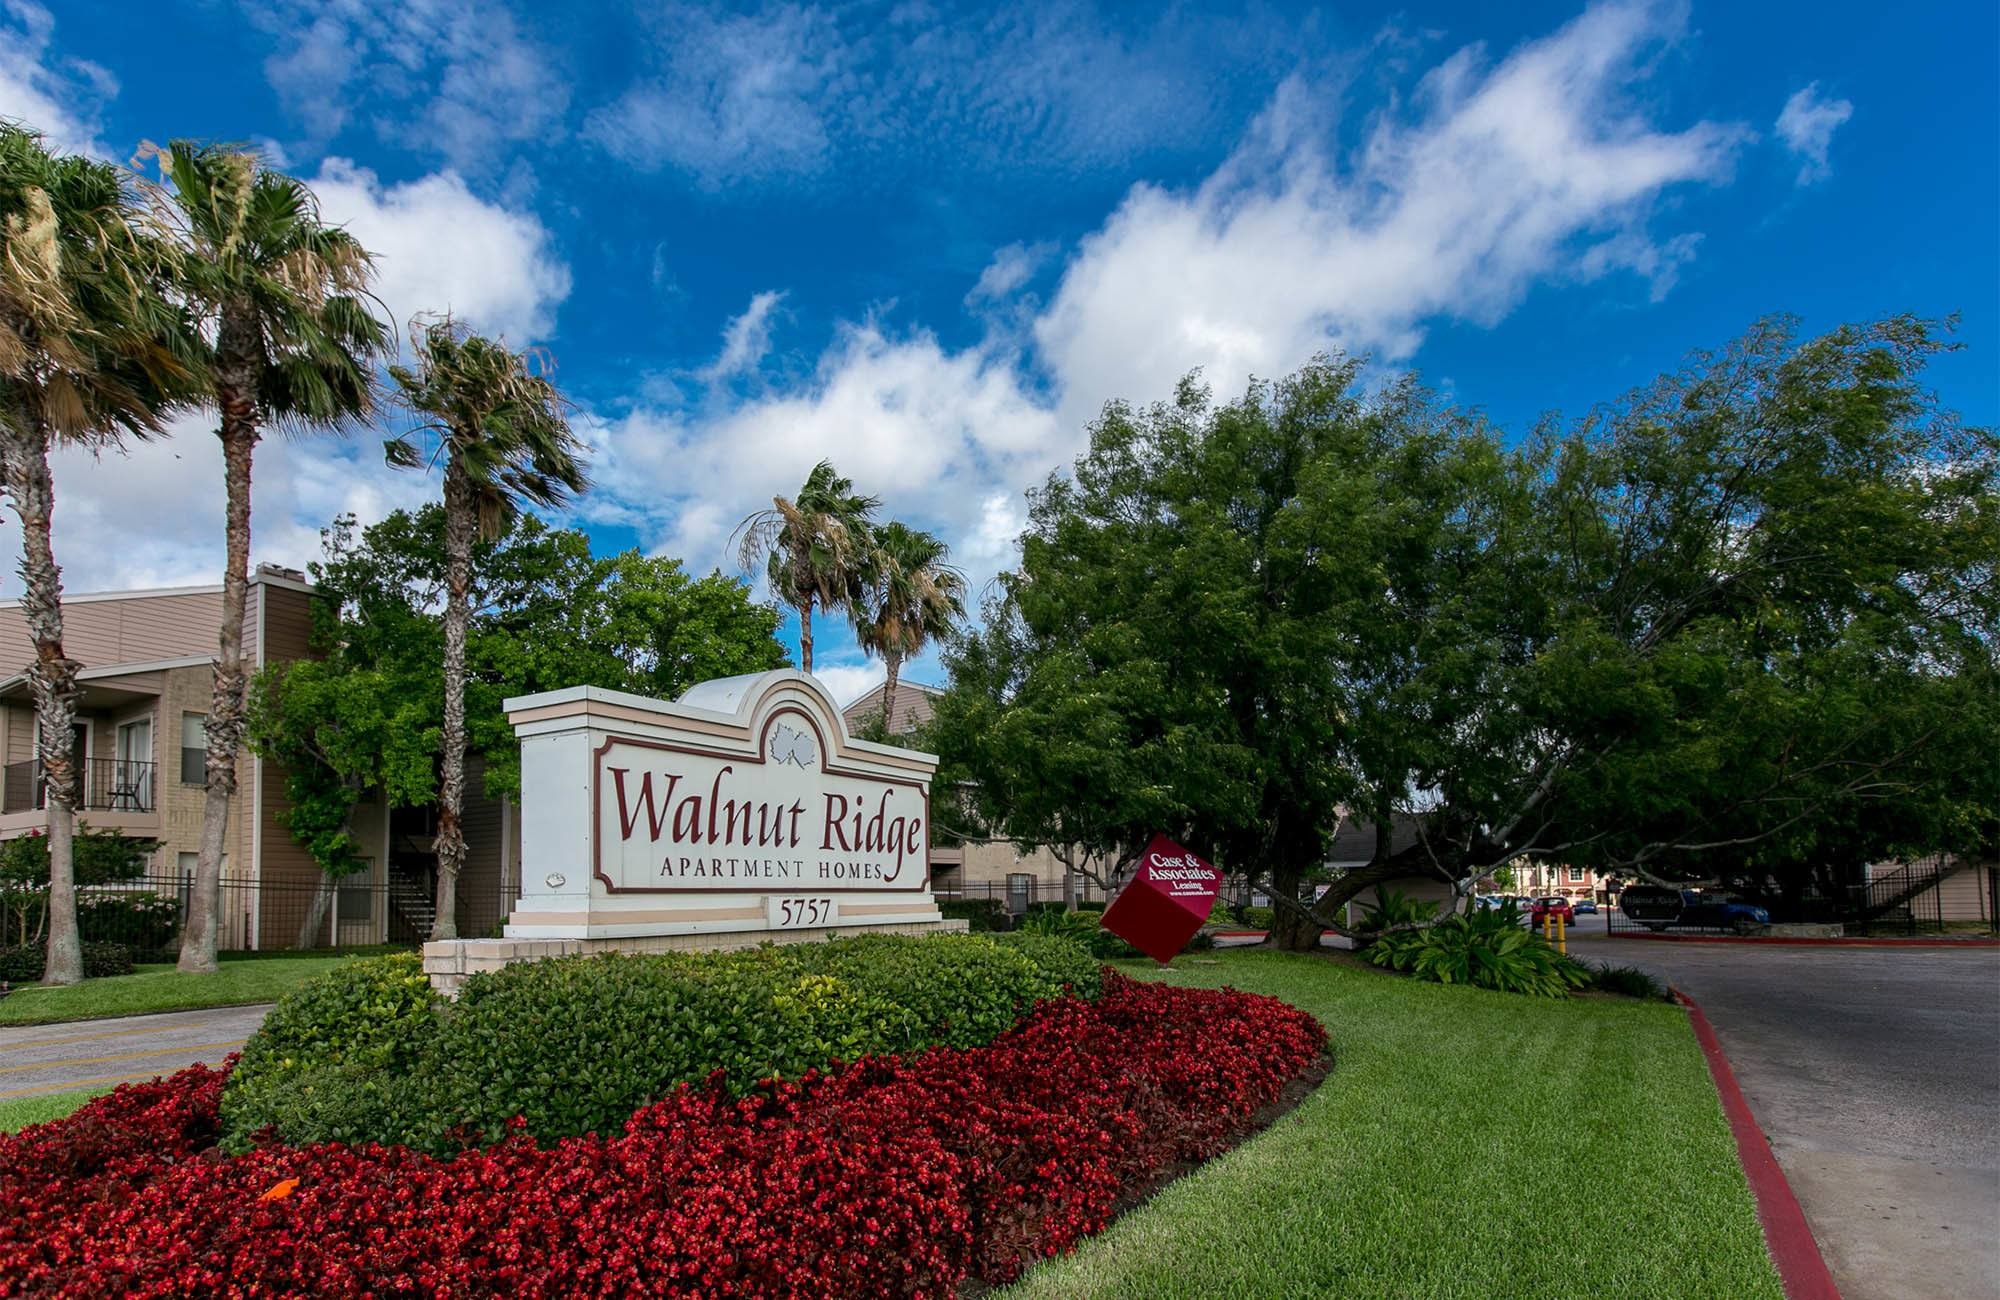 Walnut Ridge signage at apartments in Corpus Christi, TX